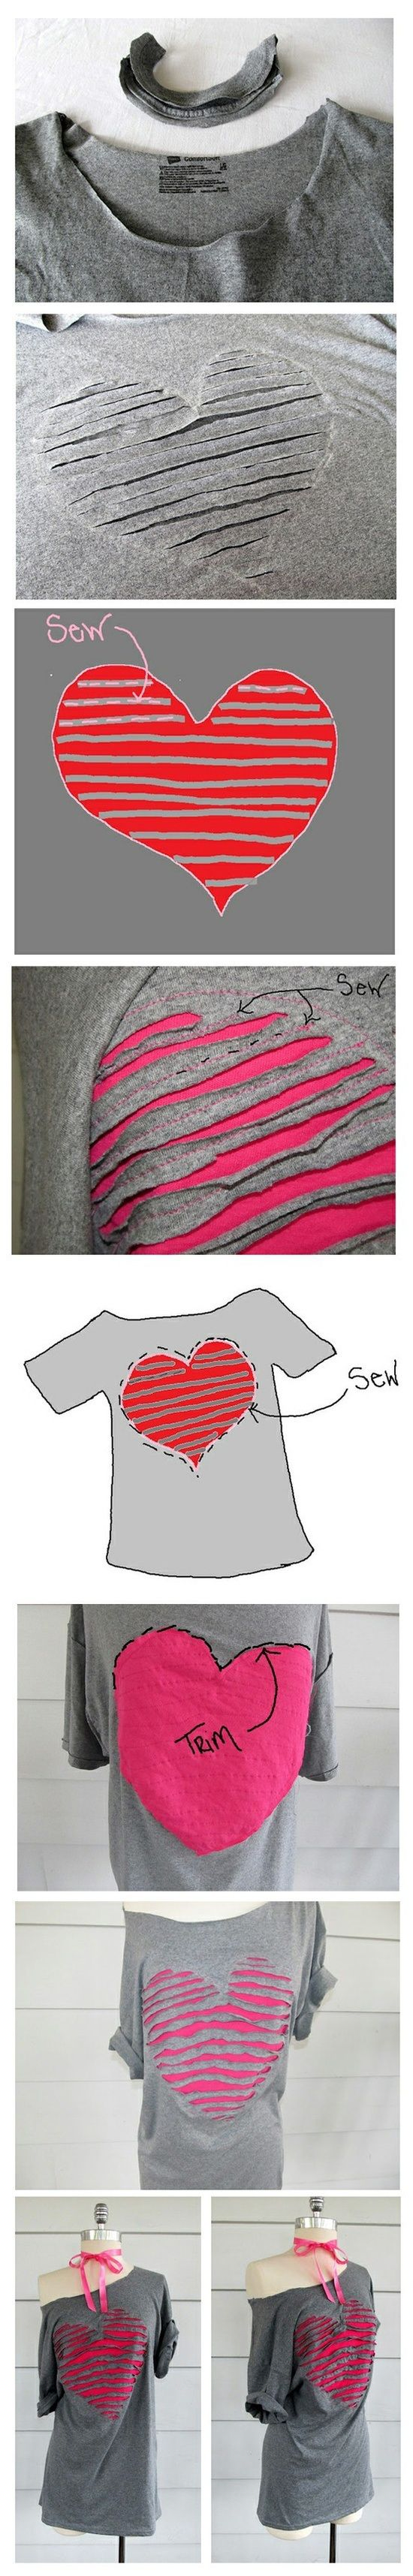 Revamp Old T-shirt into Love-ly One - maybe I could try something similar w Travis' shirts w ugly logos on them